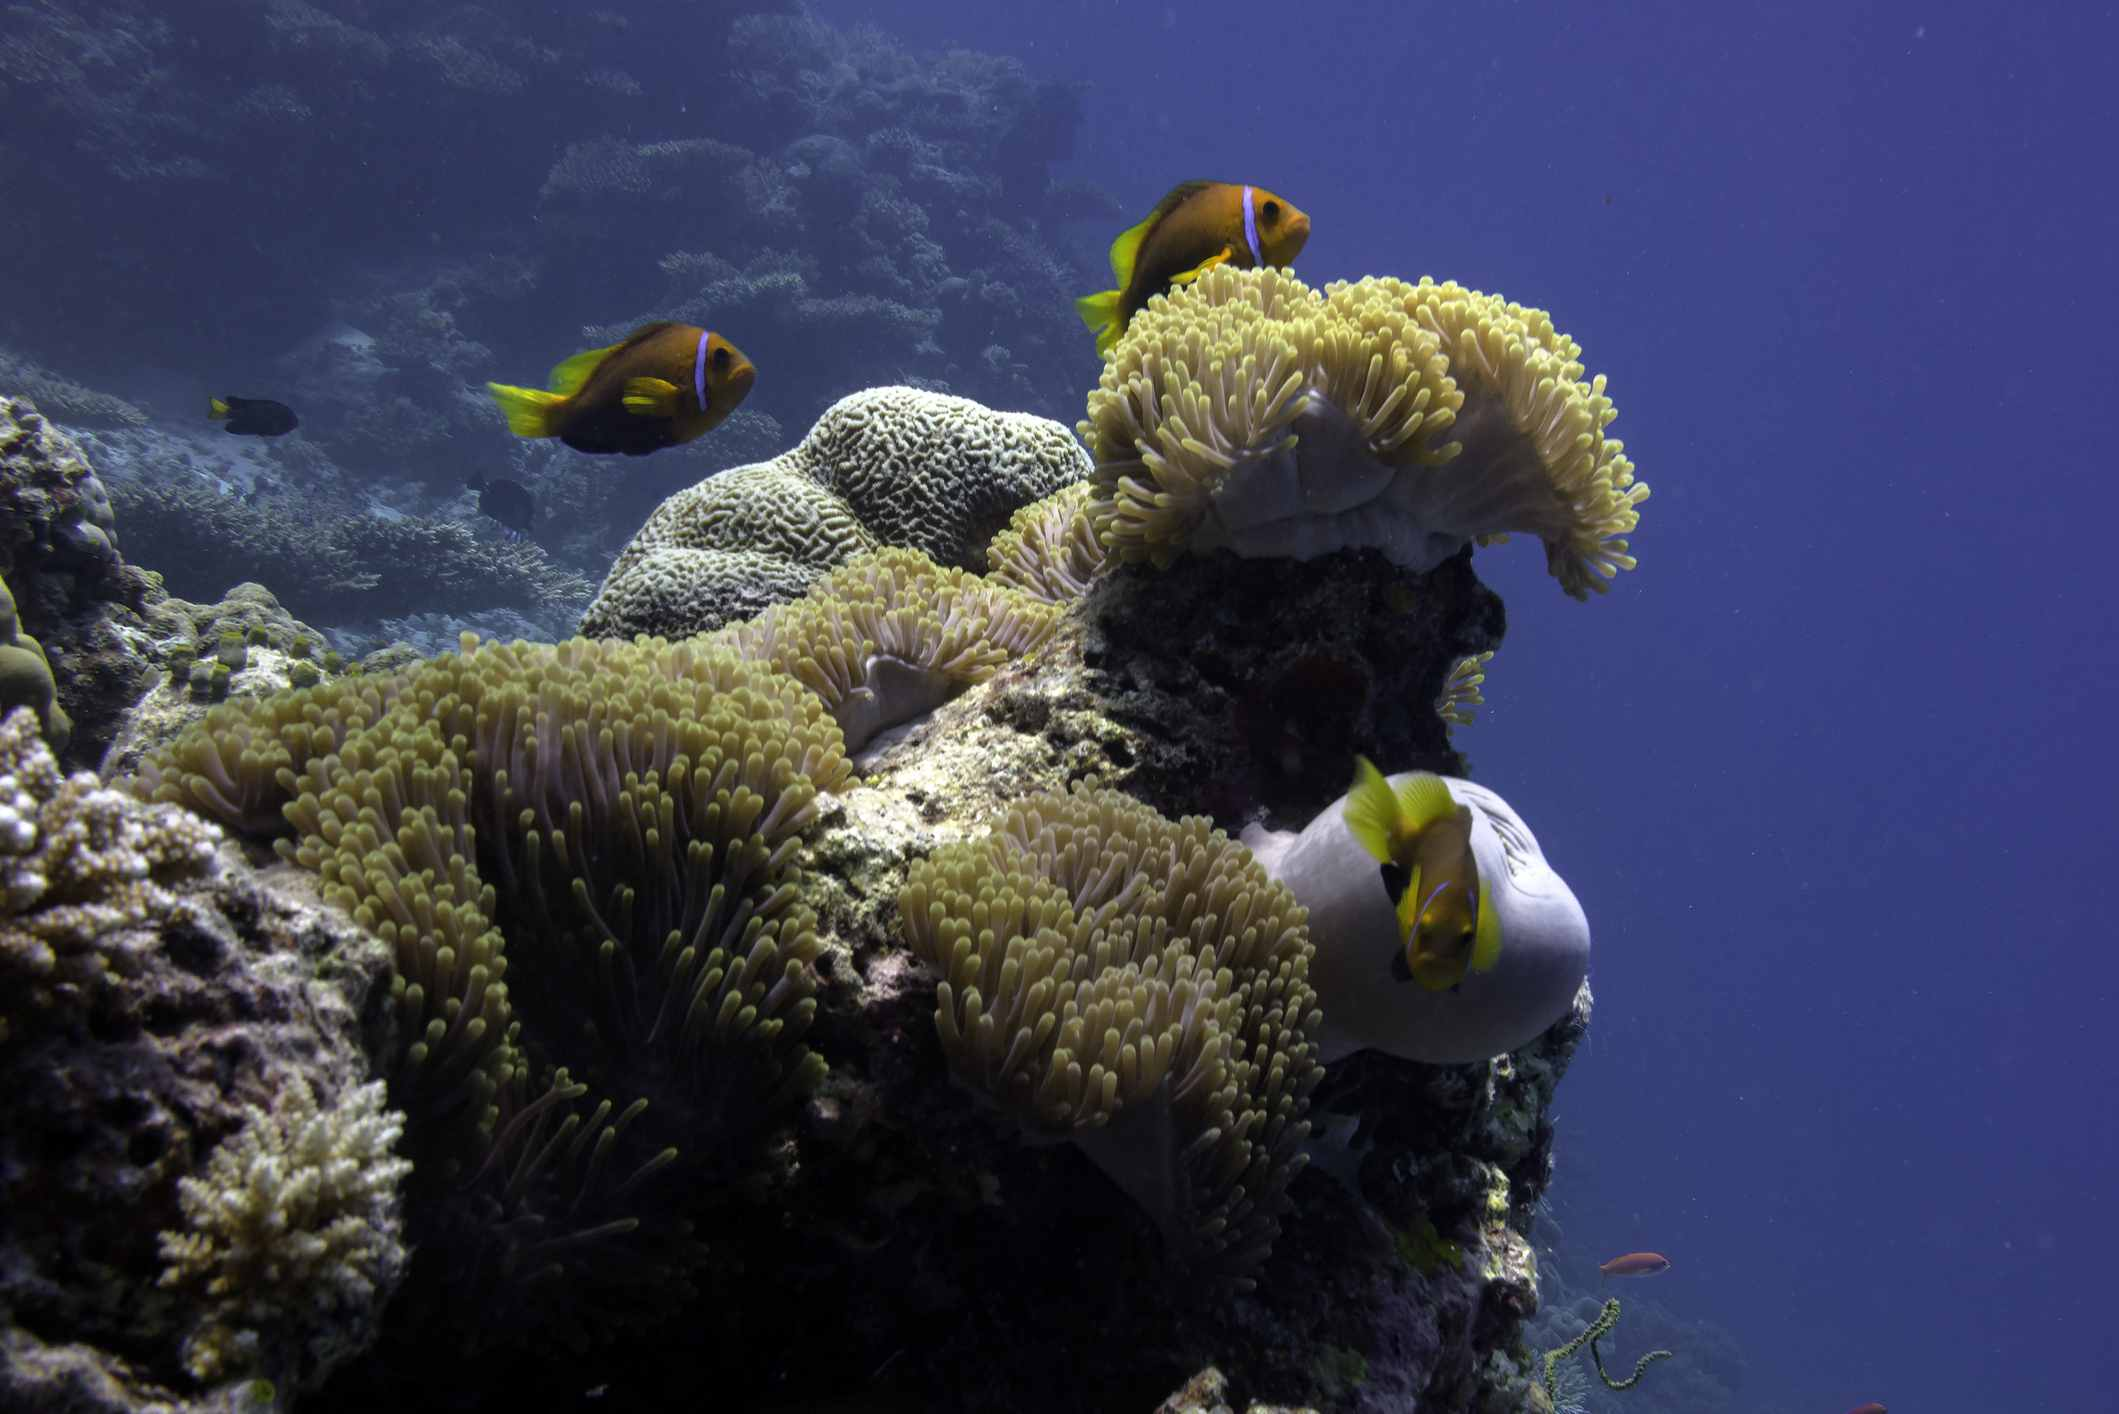 Corals, anemone, and clown fish